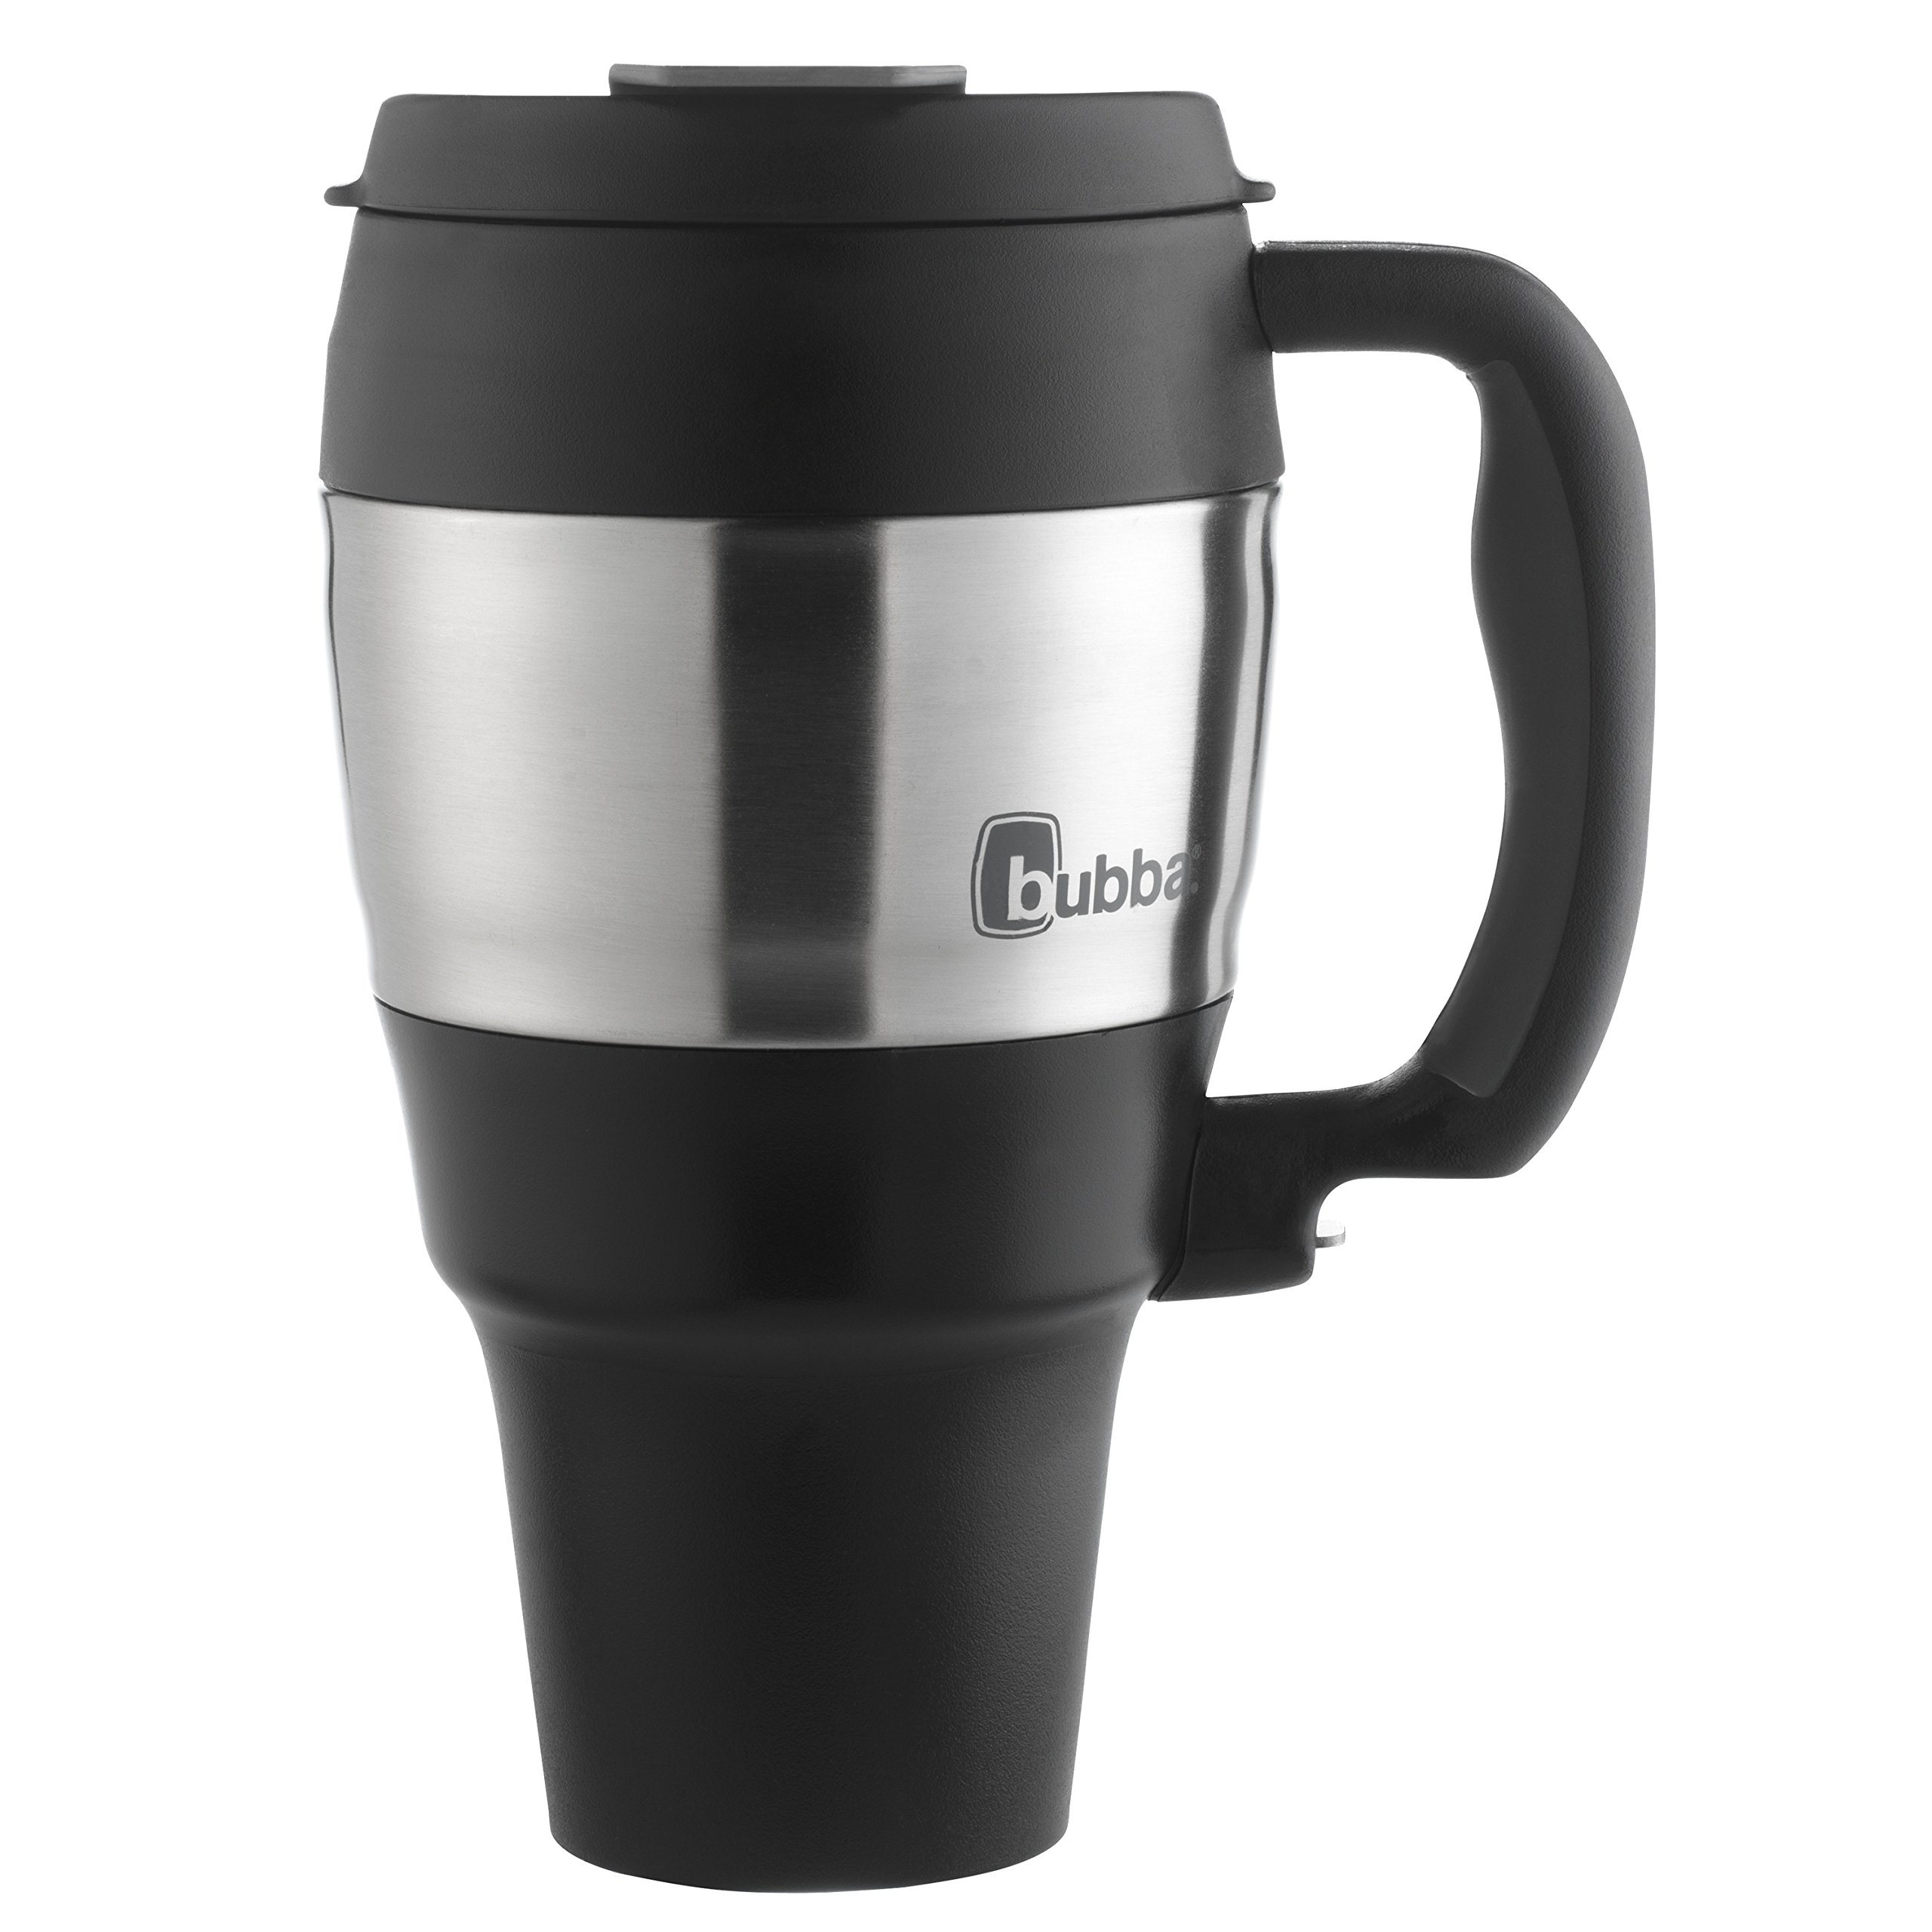 Bubba Brands Classic Insulated Travel Mug 34 Oz Black New